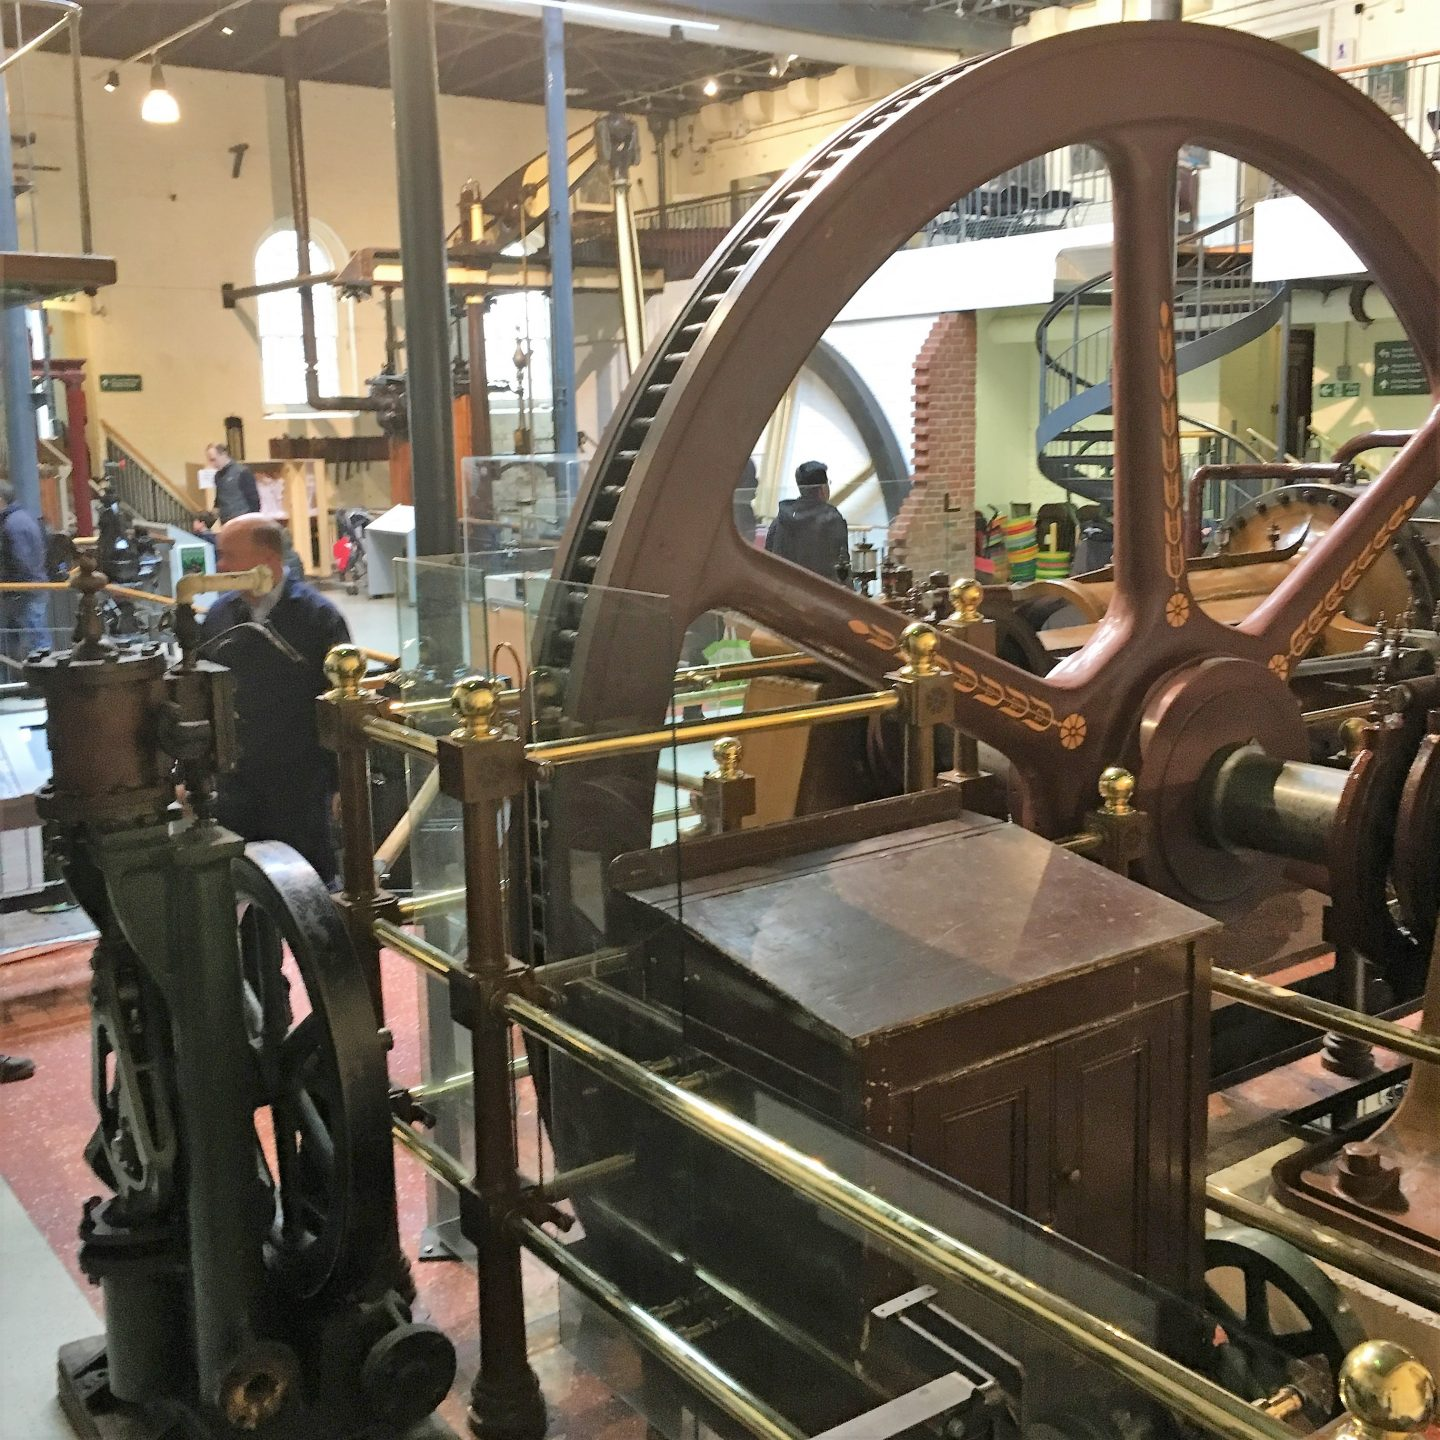 London' secret Museums: the Water and Steam Museum